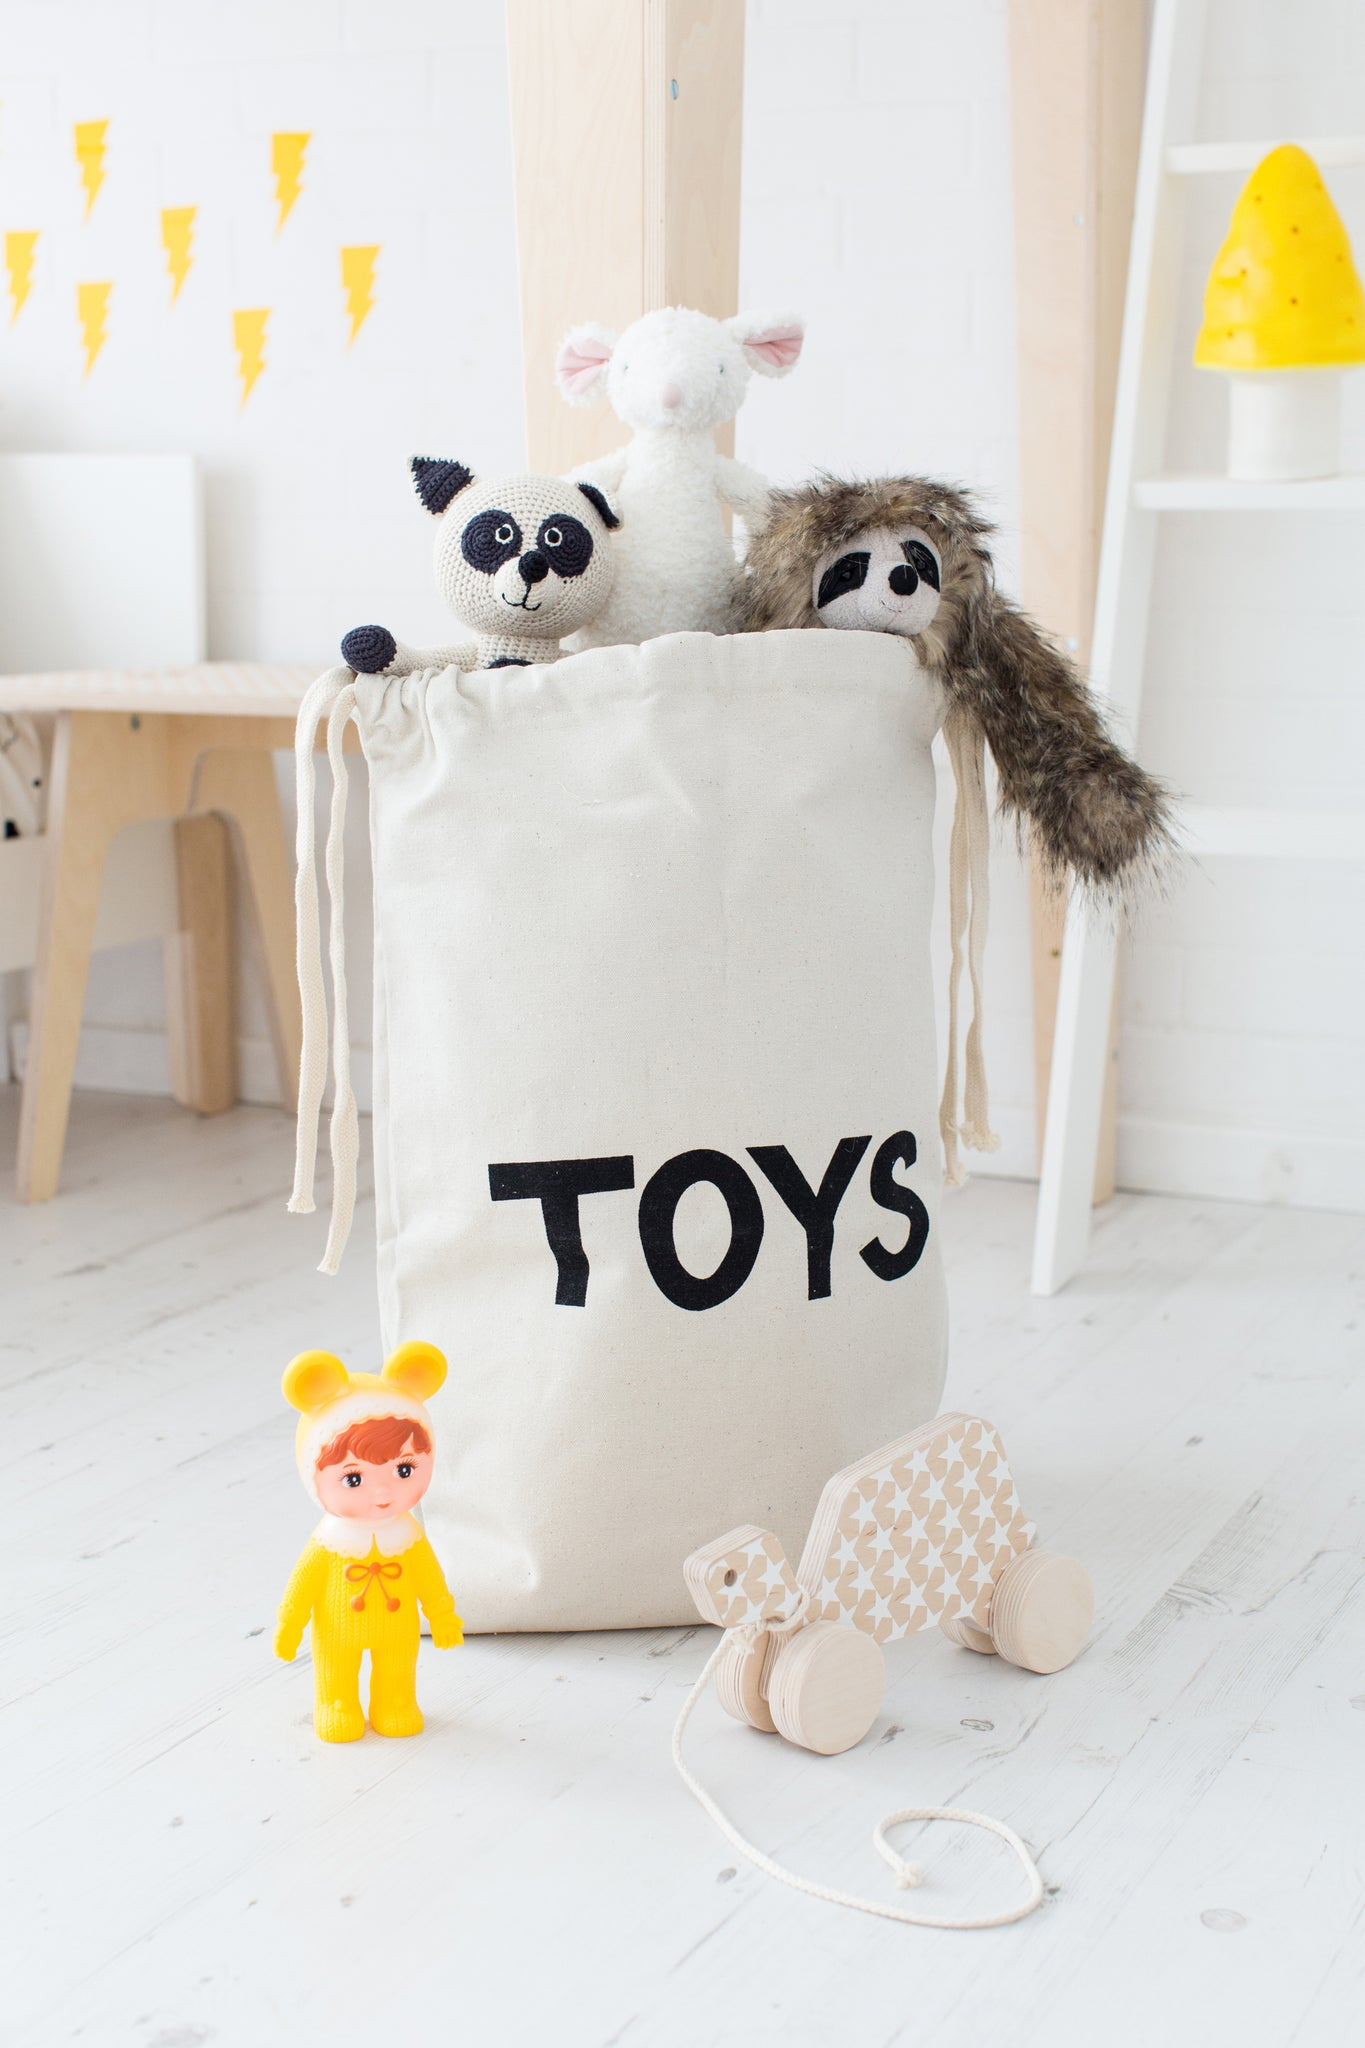 Toy storage bag by Tellkiddo, available at Bobby Rabbit